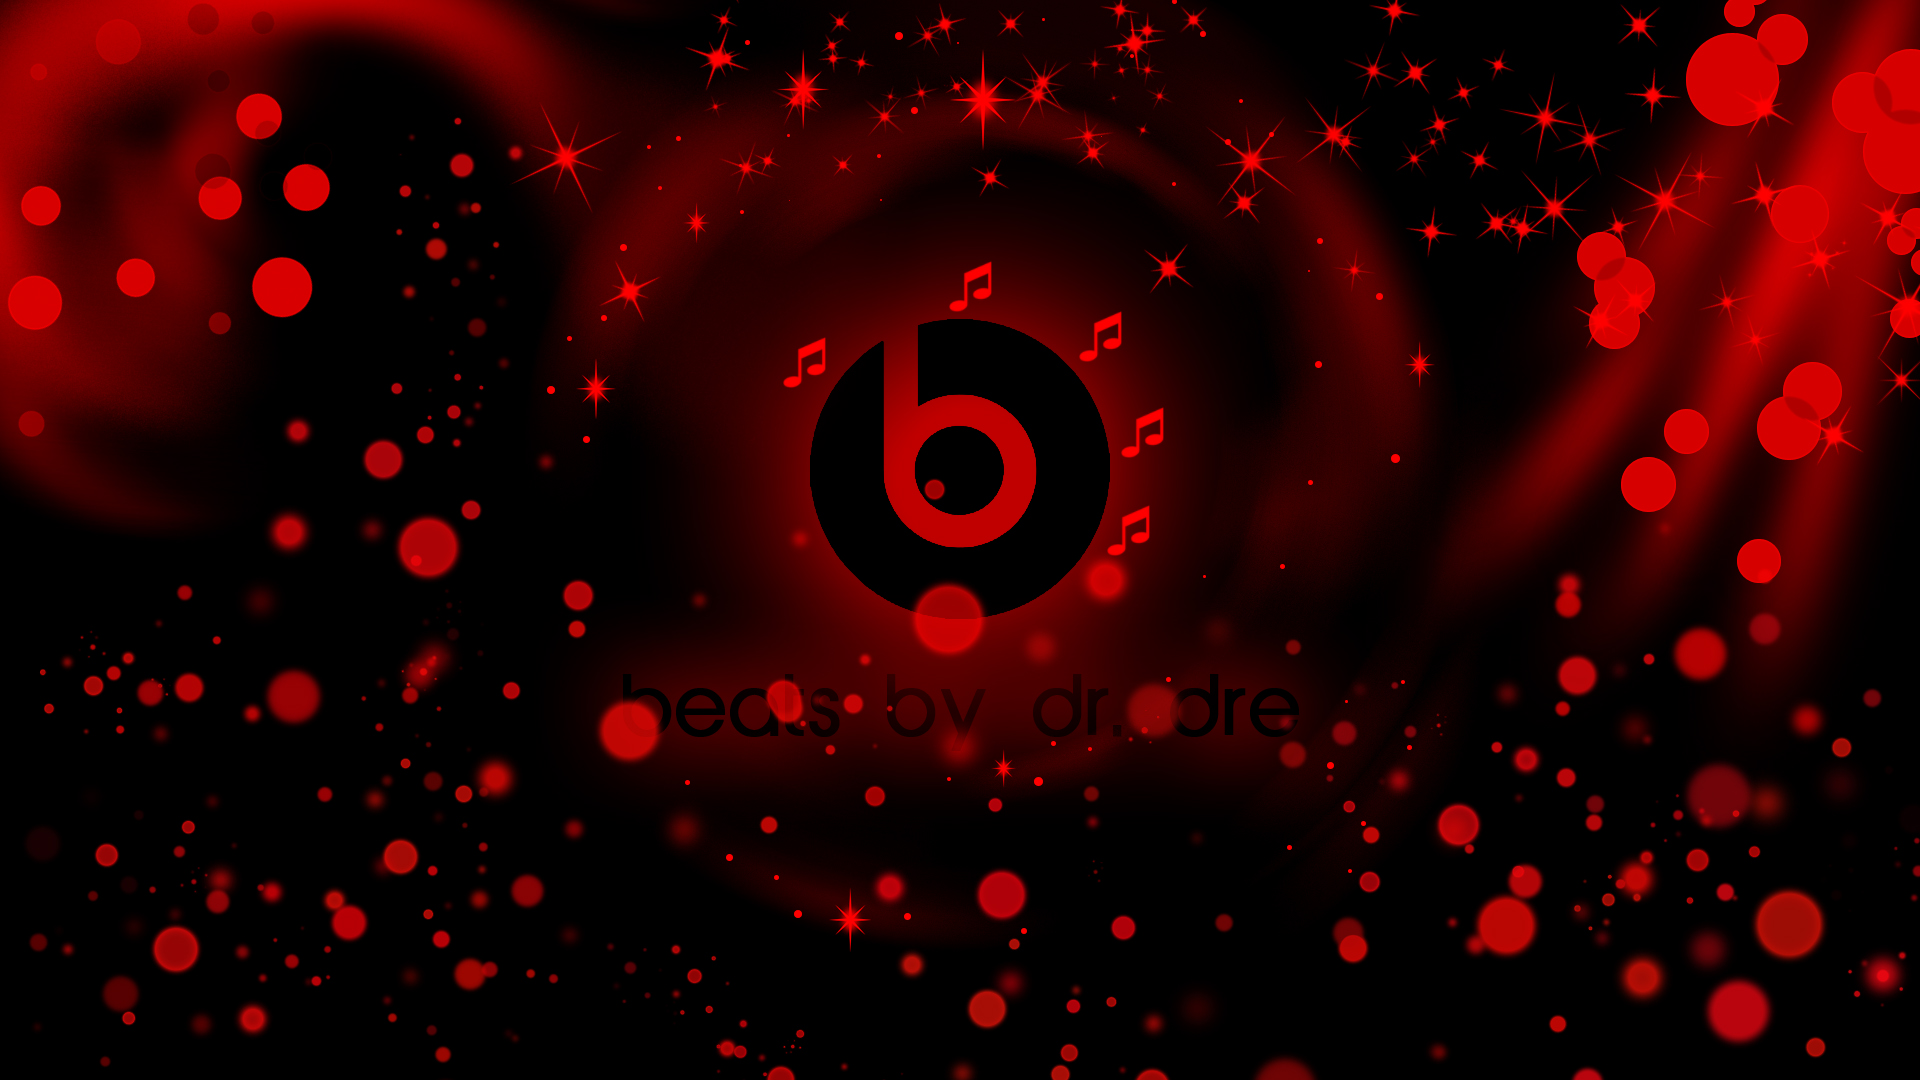 beats by dre wallpaper 20872